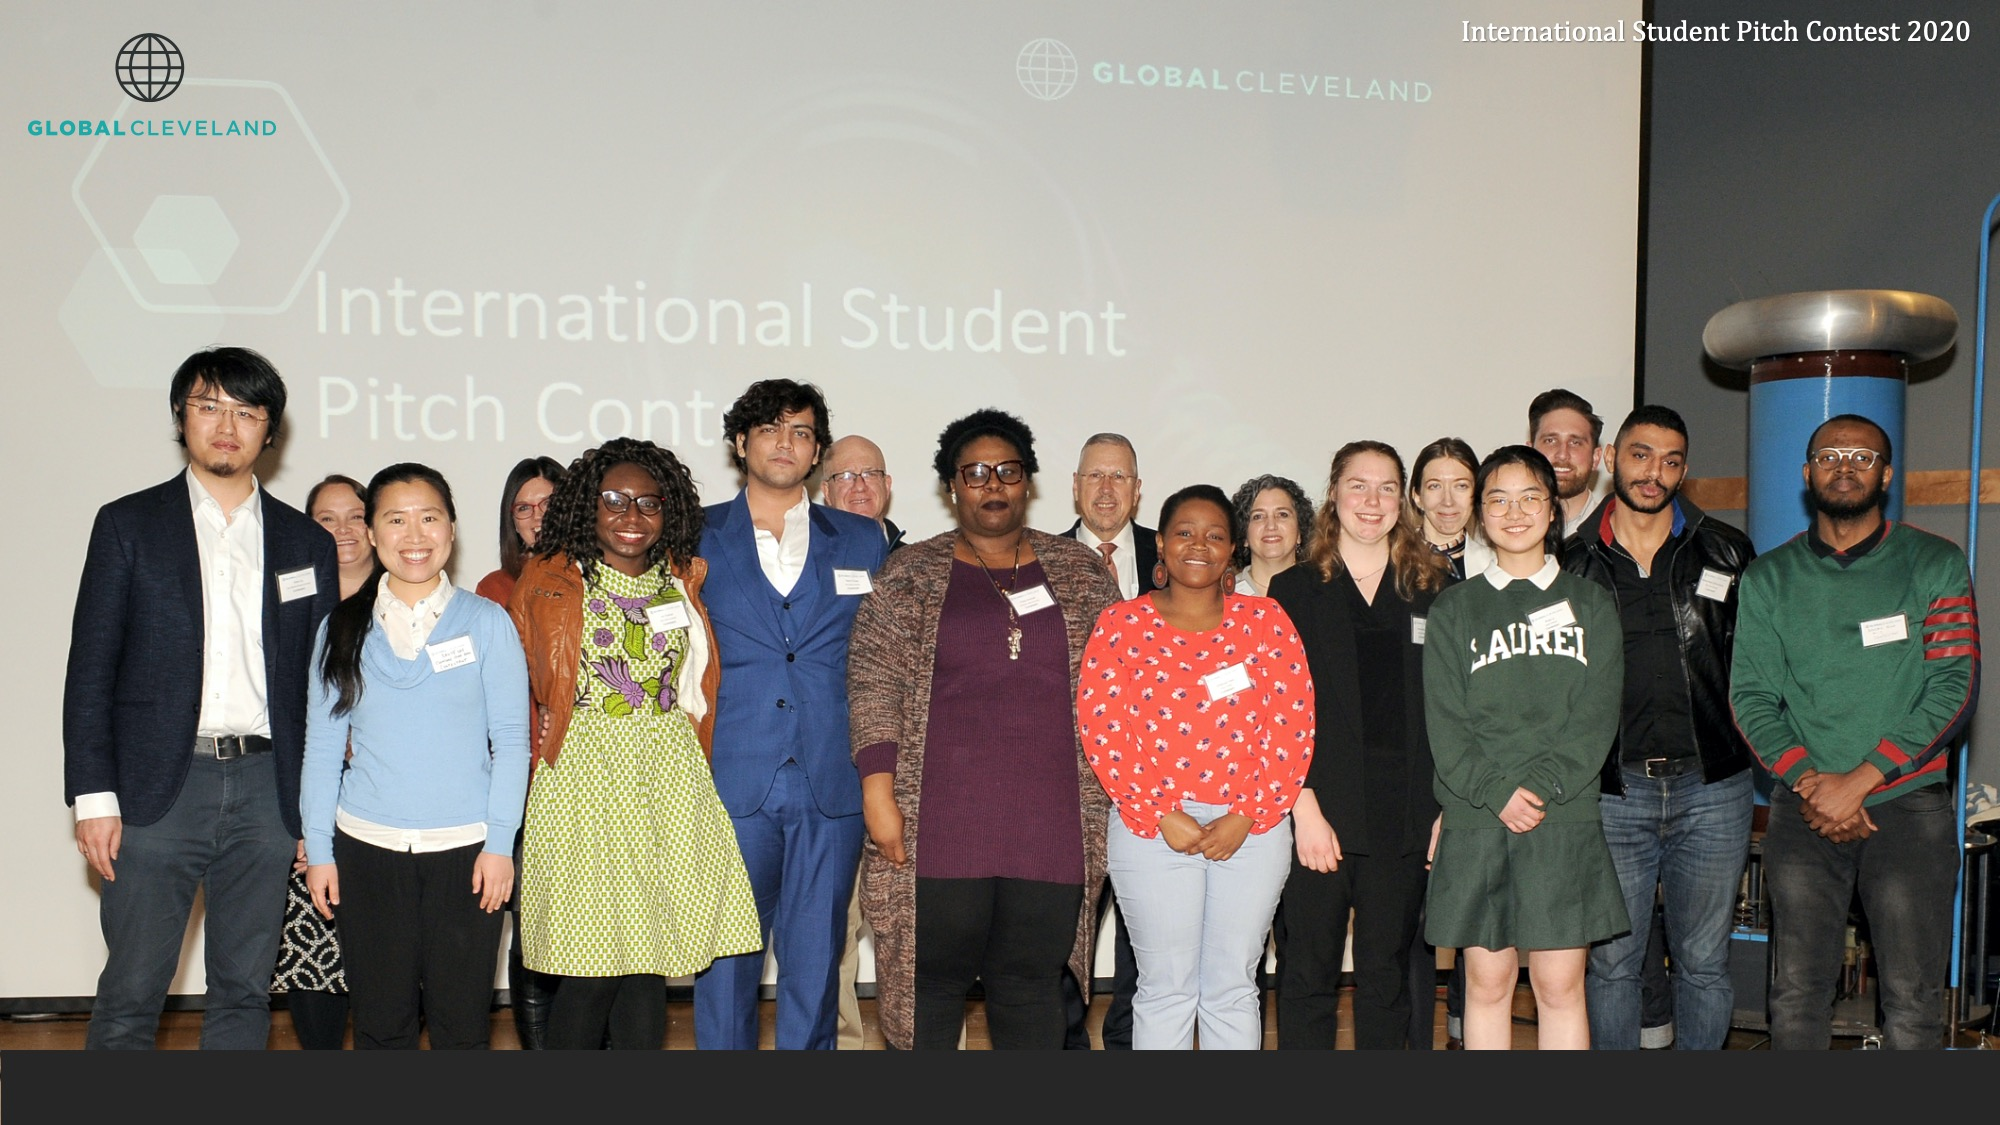 Judges and contestants from the 2021 Global Cleveland International Student Pitch Contest